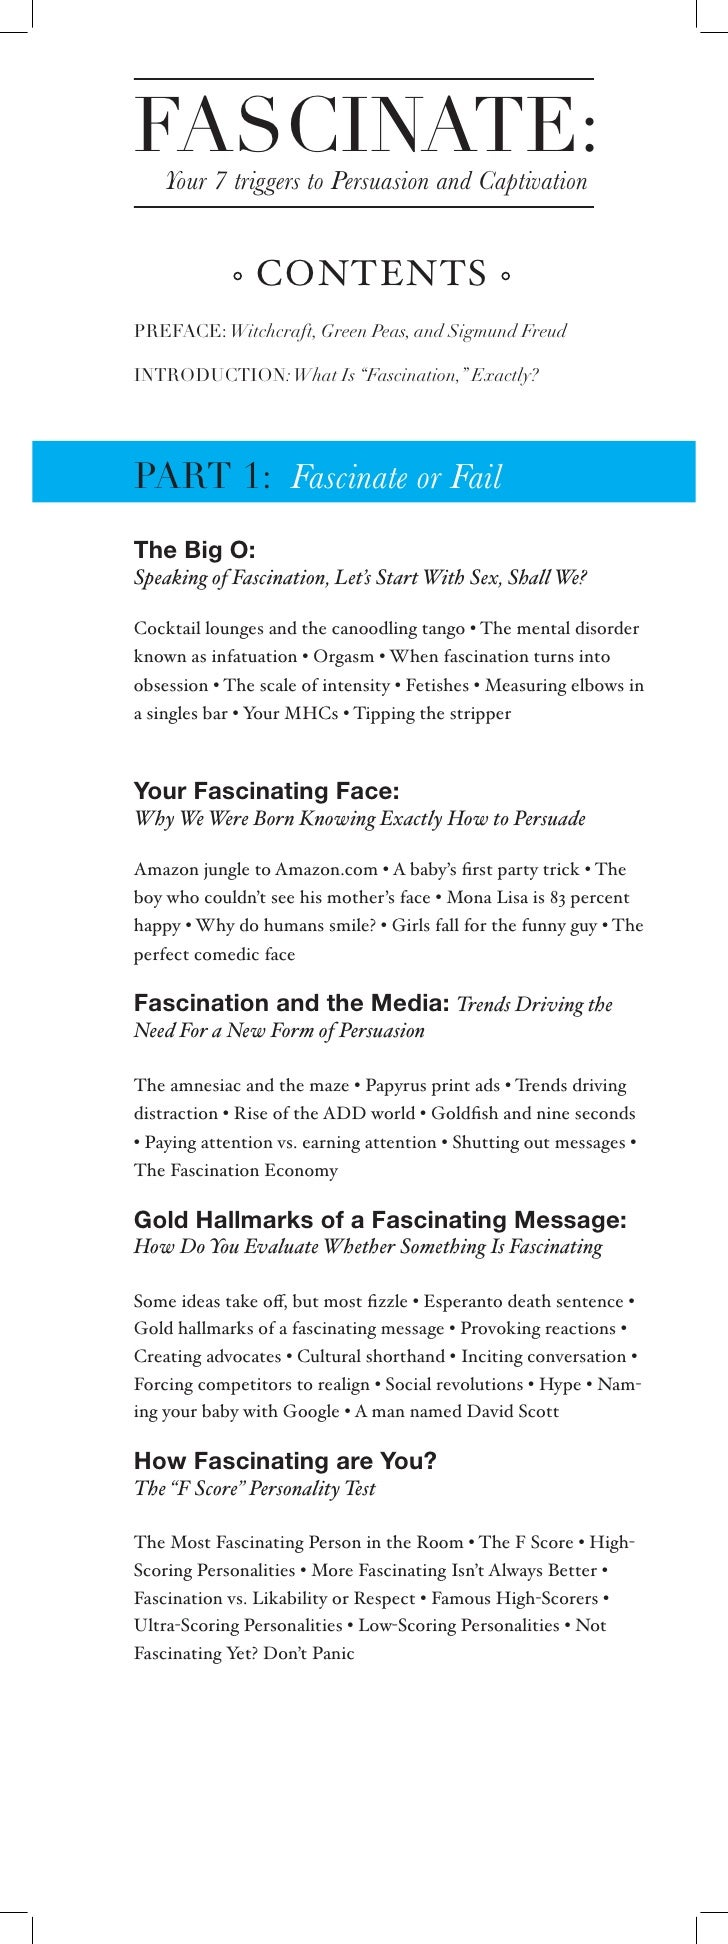 FASCINATE: A sneak peek of the content